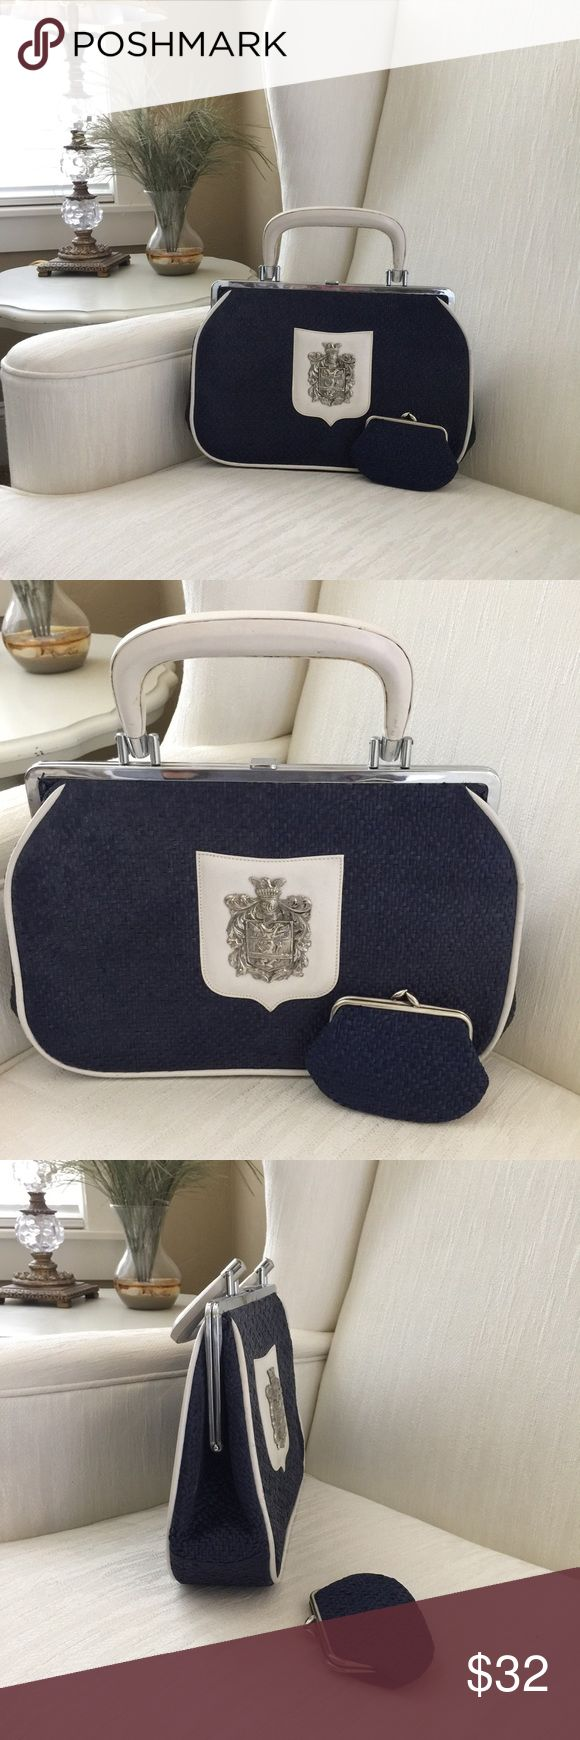 Vintage Purse by Marforio Venezia Beautiful Vintage navy blue and white purse still in very good condition. It comes with its own coin purse. Bags